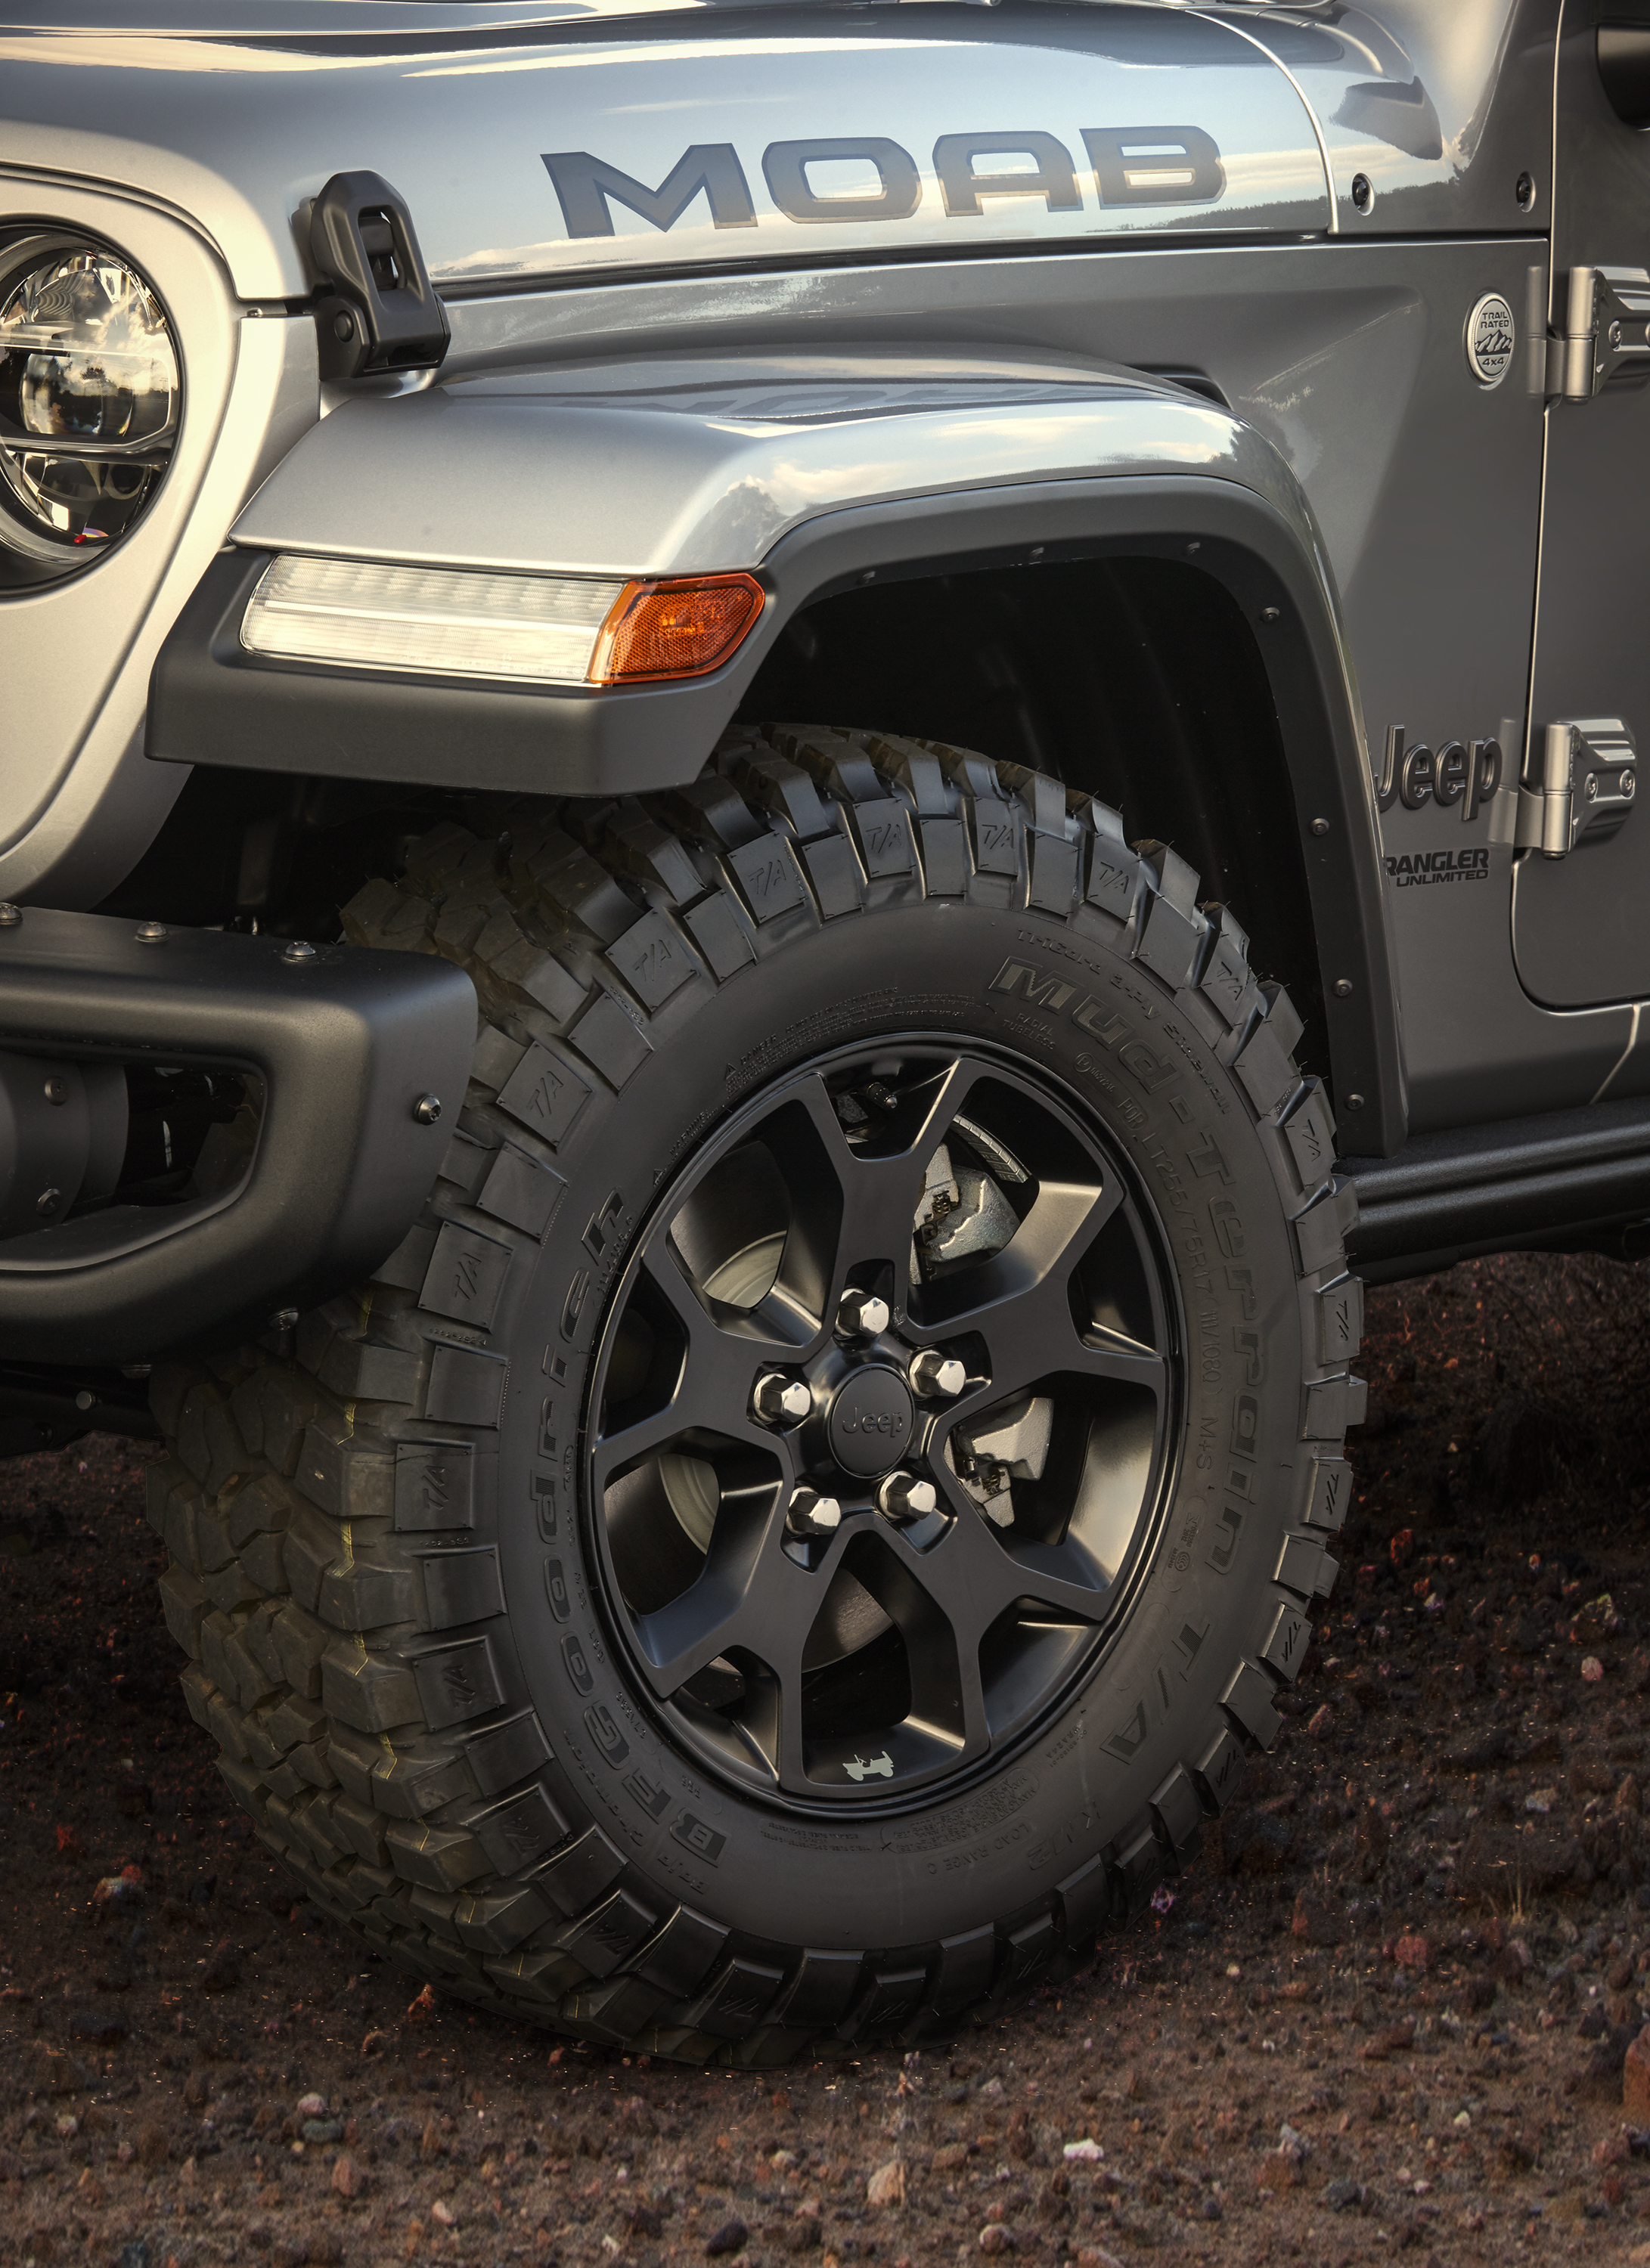 52 Concept of Jeep Moab 2020 Specs by Jeep Moab 2020